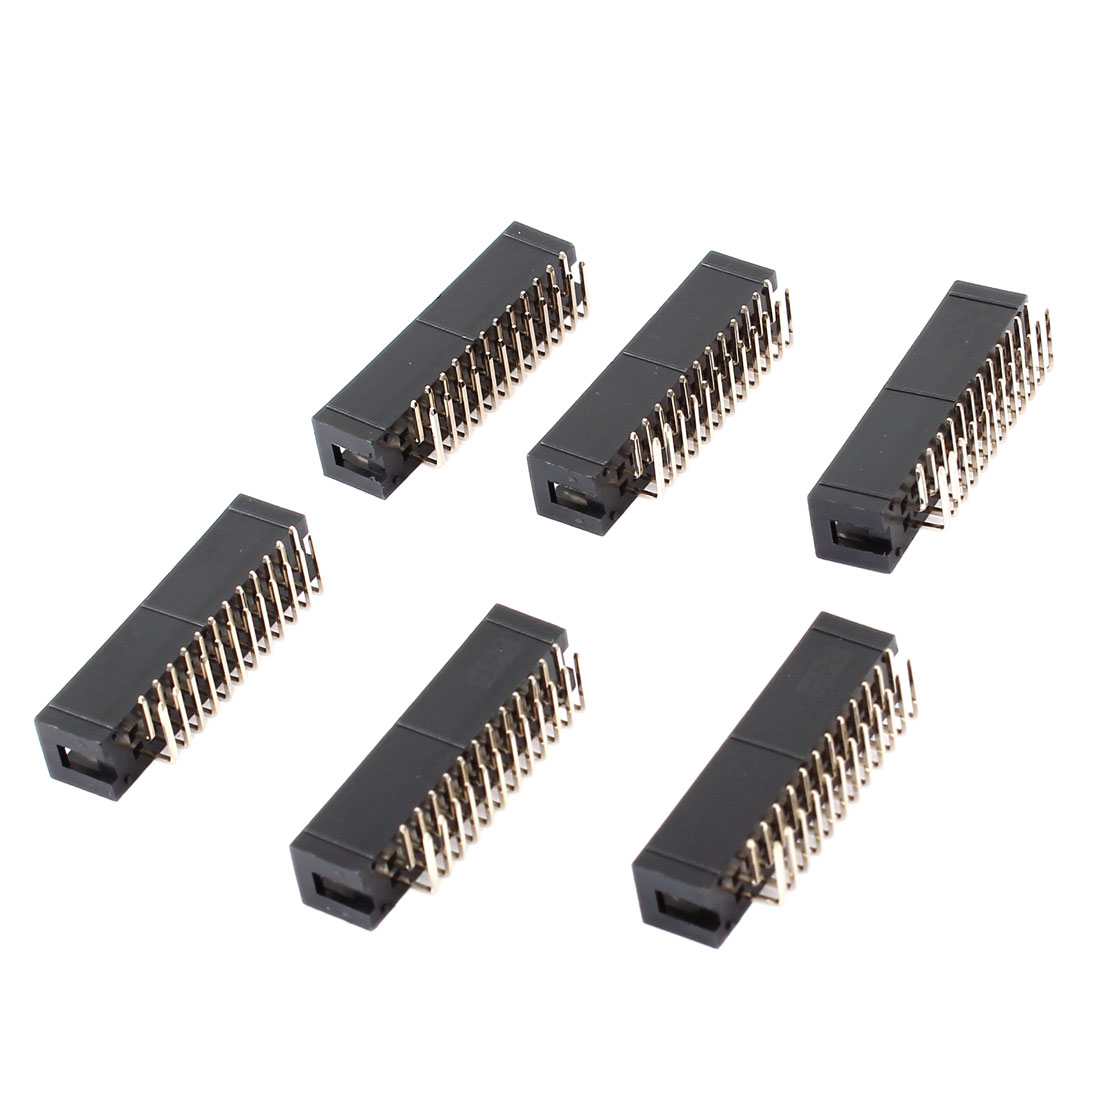 6Pcs DC3-24PL 2x12 Pins 24P 2.54mm Pitch Right Angle Connector Pin IDC Box Headers